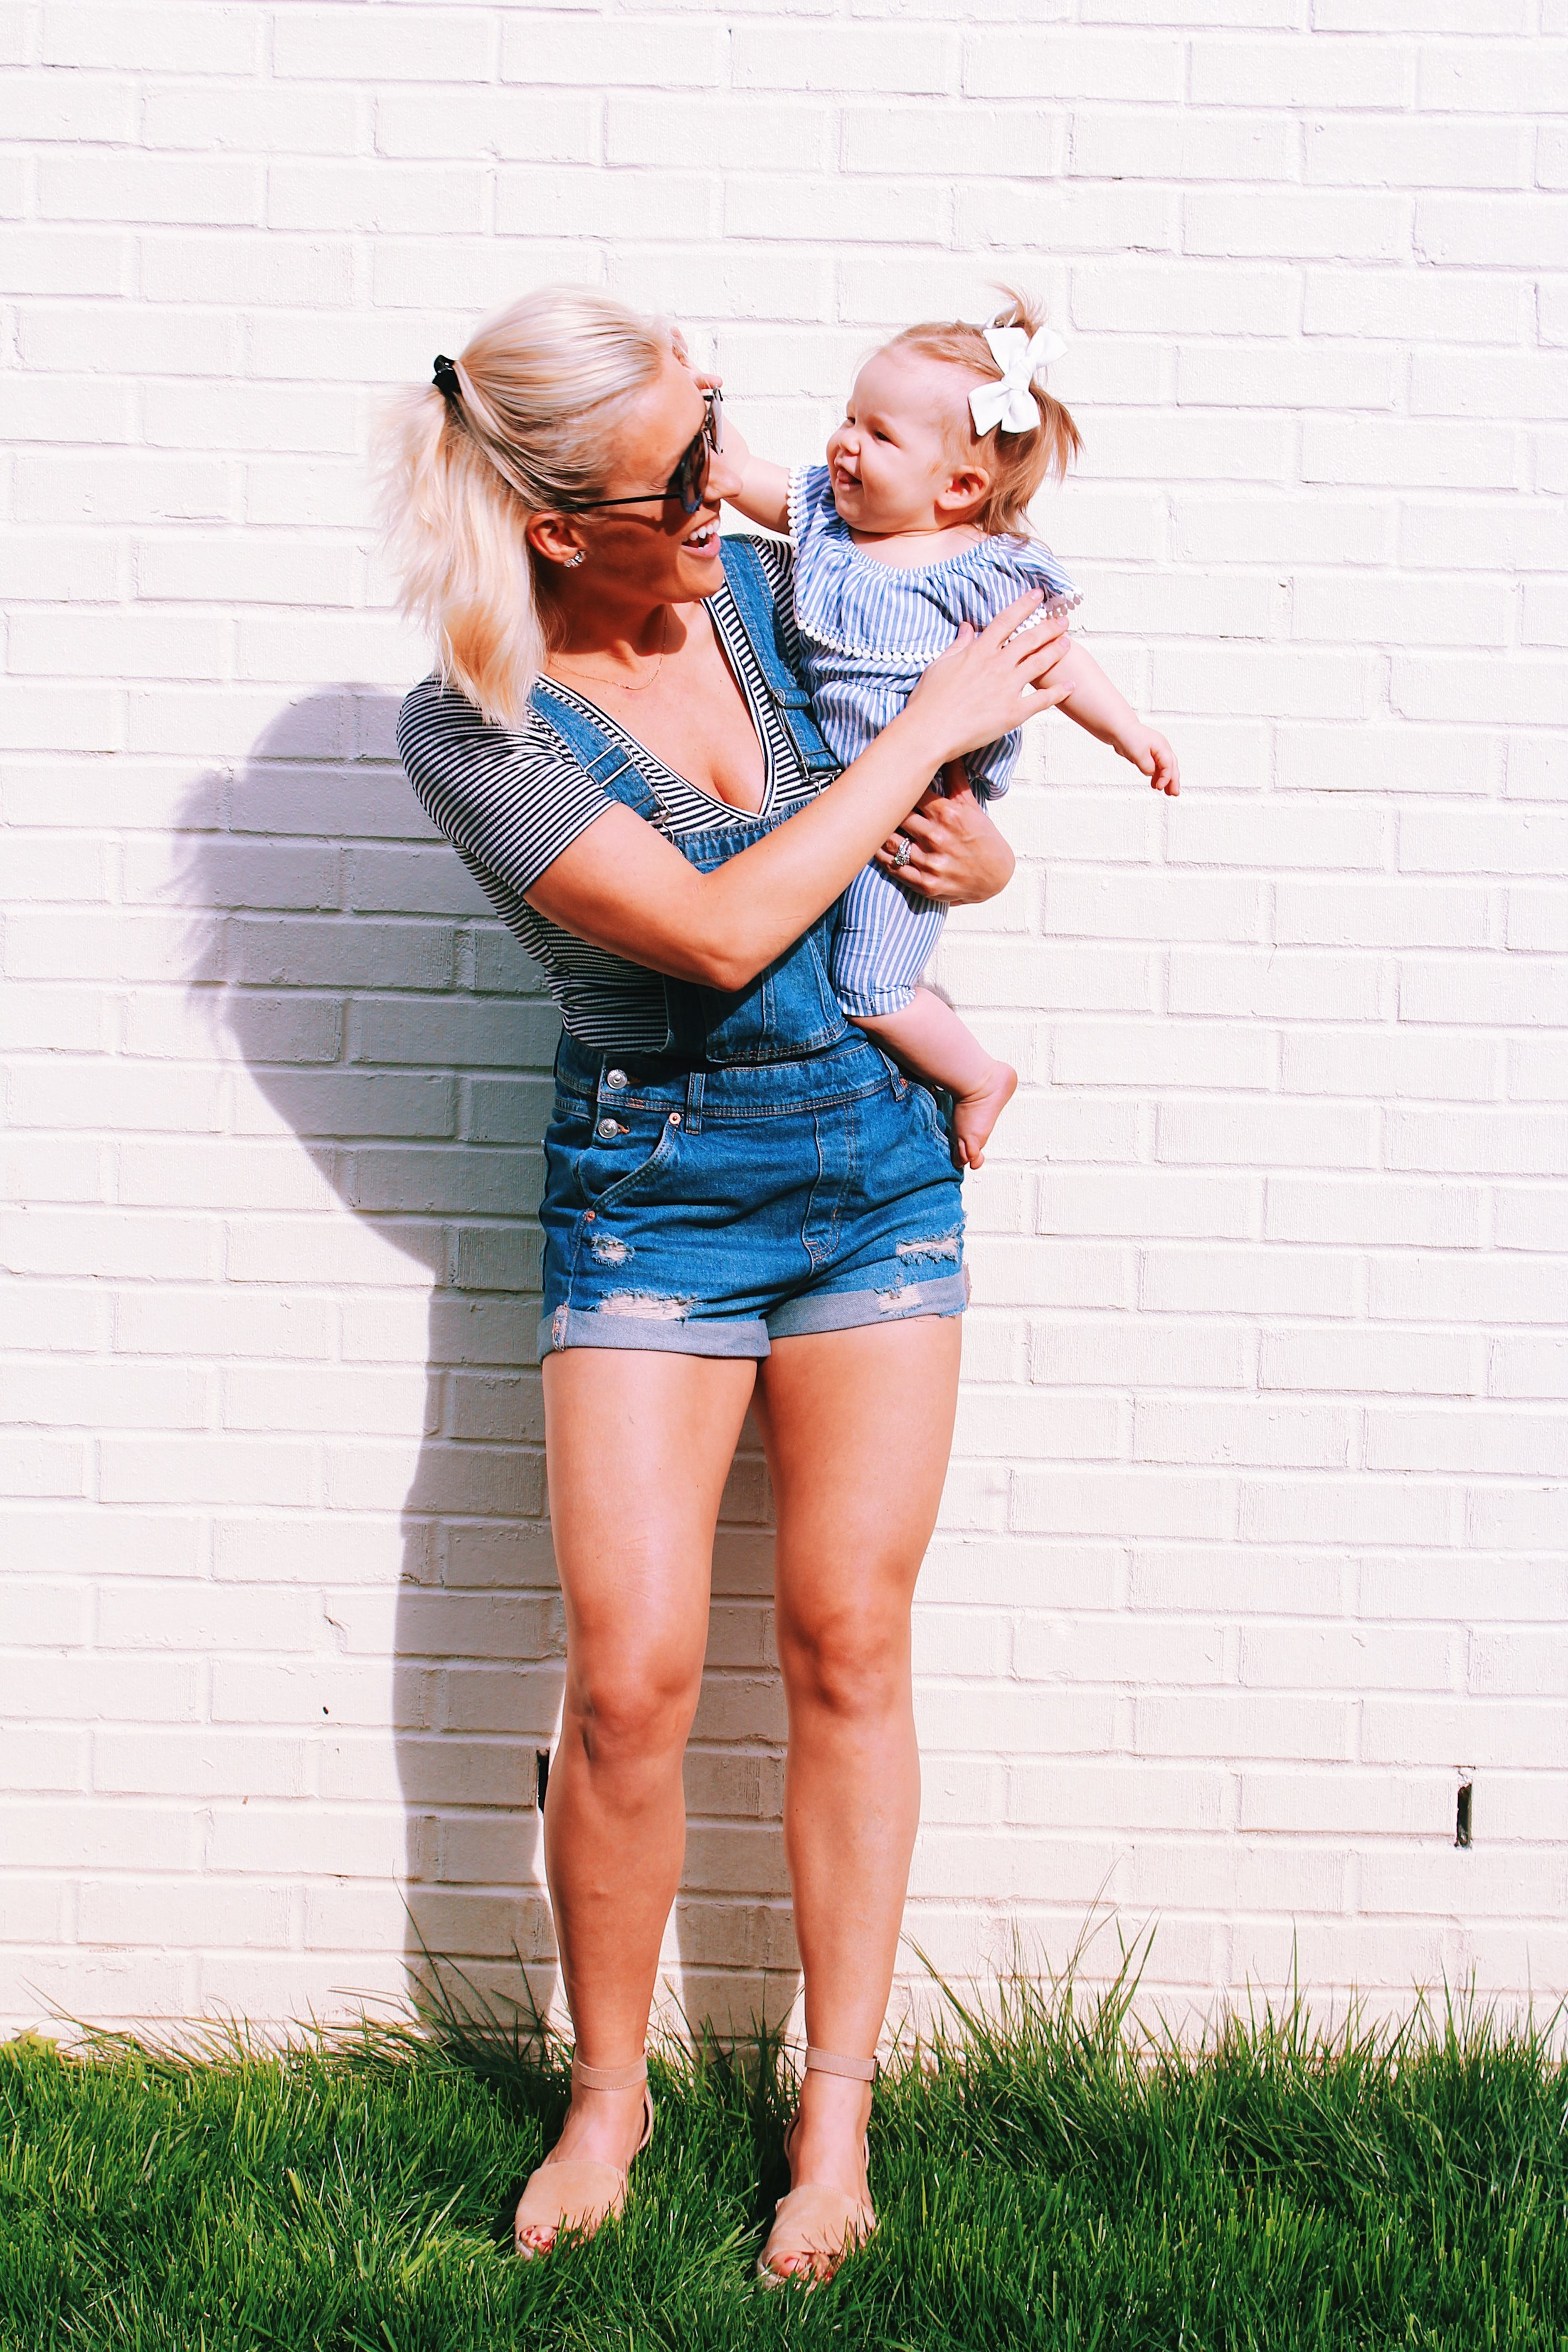 OUTFIT DEETS:  Overalls  (size 6)  Similar pair of Overalls in case mine are still sold out |  B  odysuit  |  Wedges  |  Earrings  |  Sunglasses  | Sophie Romper  |  Sophie Bows